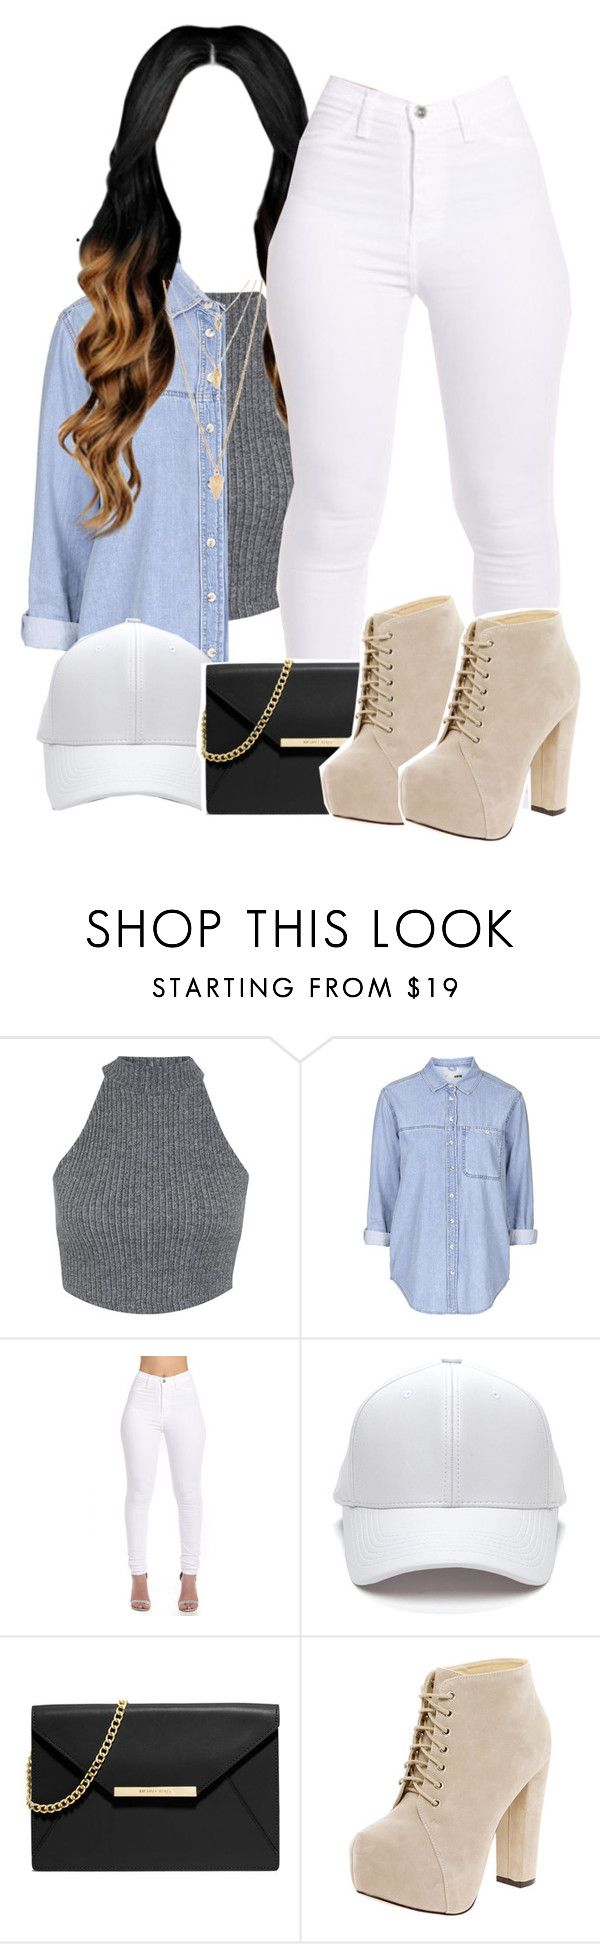 """""""I was broken, I was broken, I was so broke"""" by queen-tiller ❤ liked on Polyvore featuring Miss Selfridge, Topshop, MICHAEL Michael Kors, Boohoo, Forever 21, women's clothing, women, female, woman and misses"""